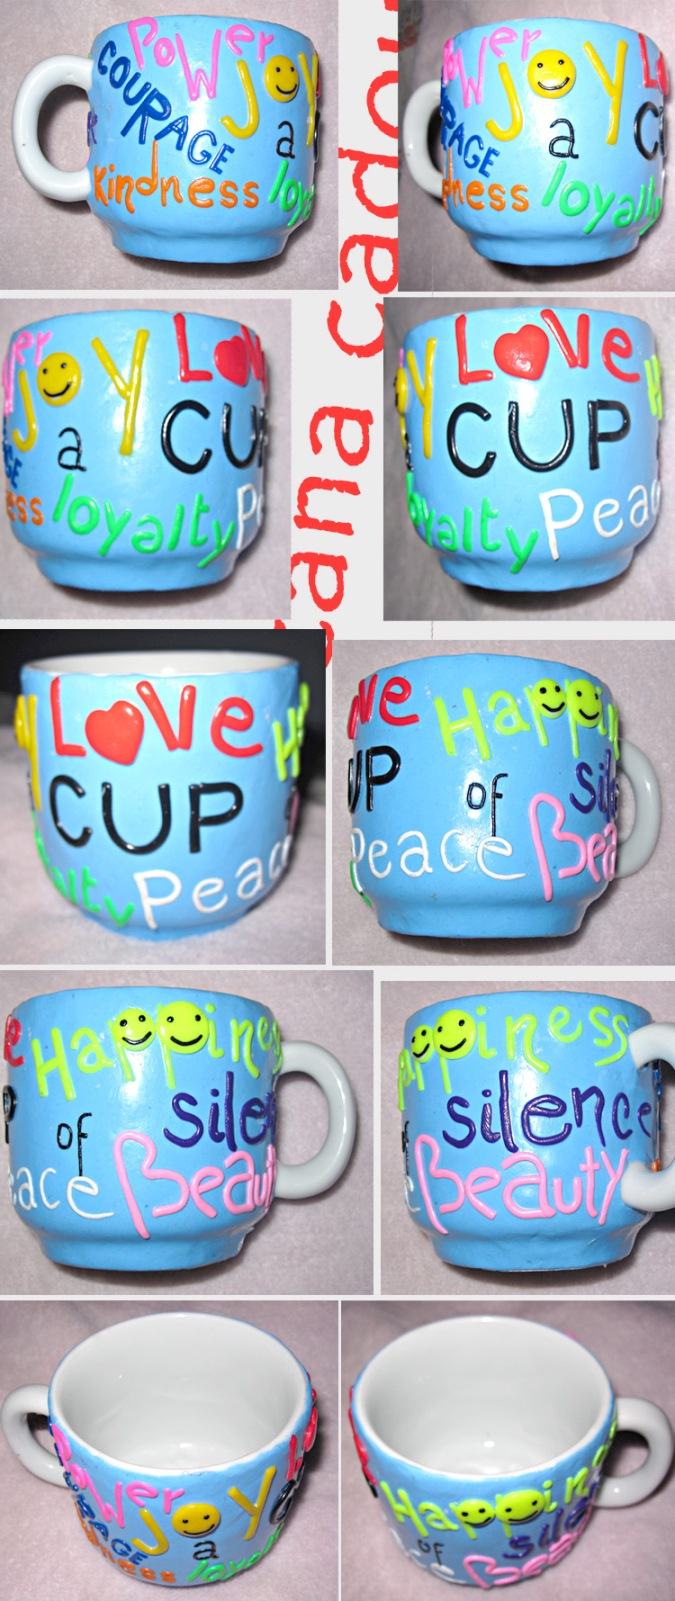 cana-handmade-personalizata-cadou-a-cup-of-peace-loce-loyalty-beauty-happyness-joy-kindness